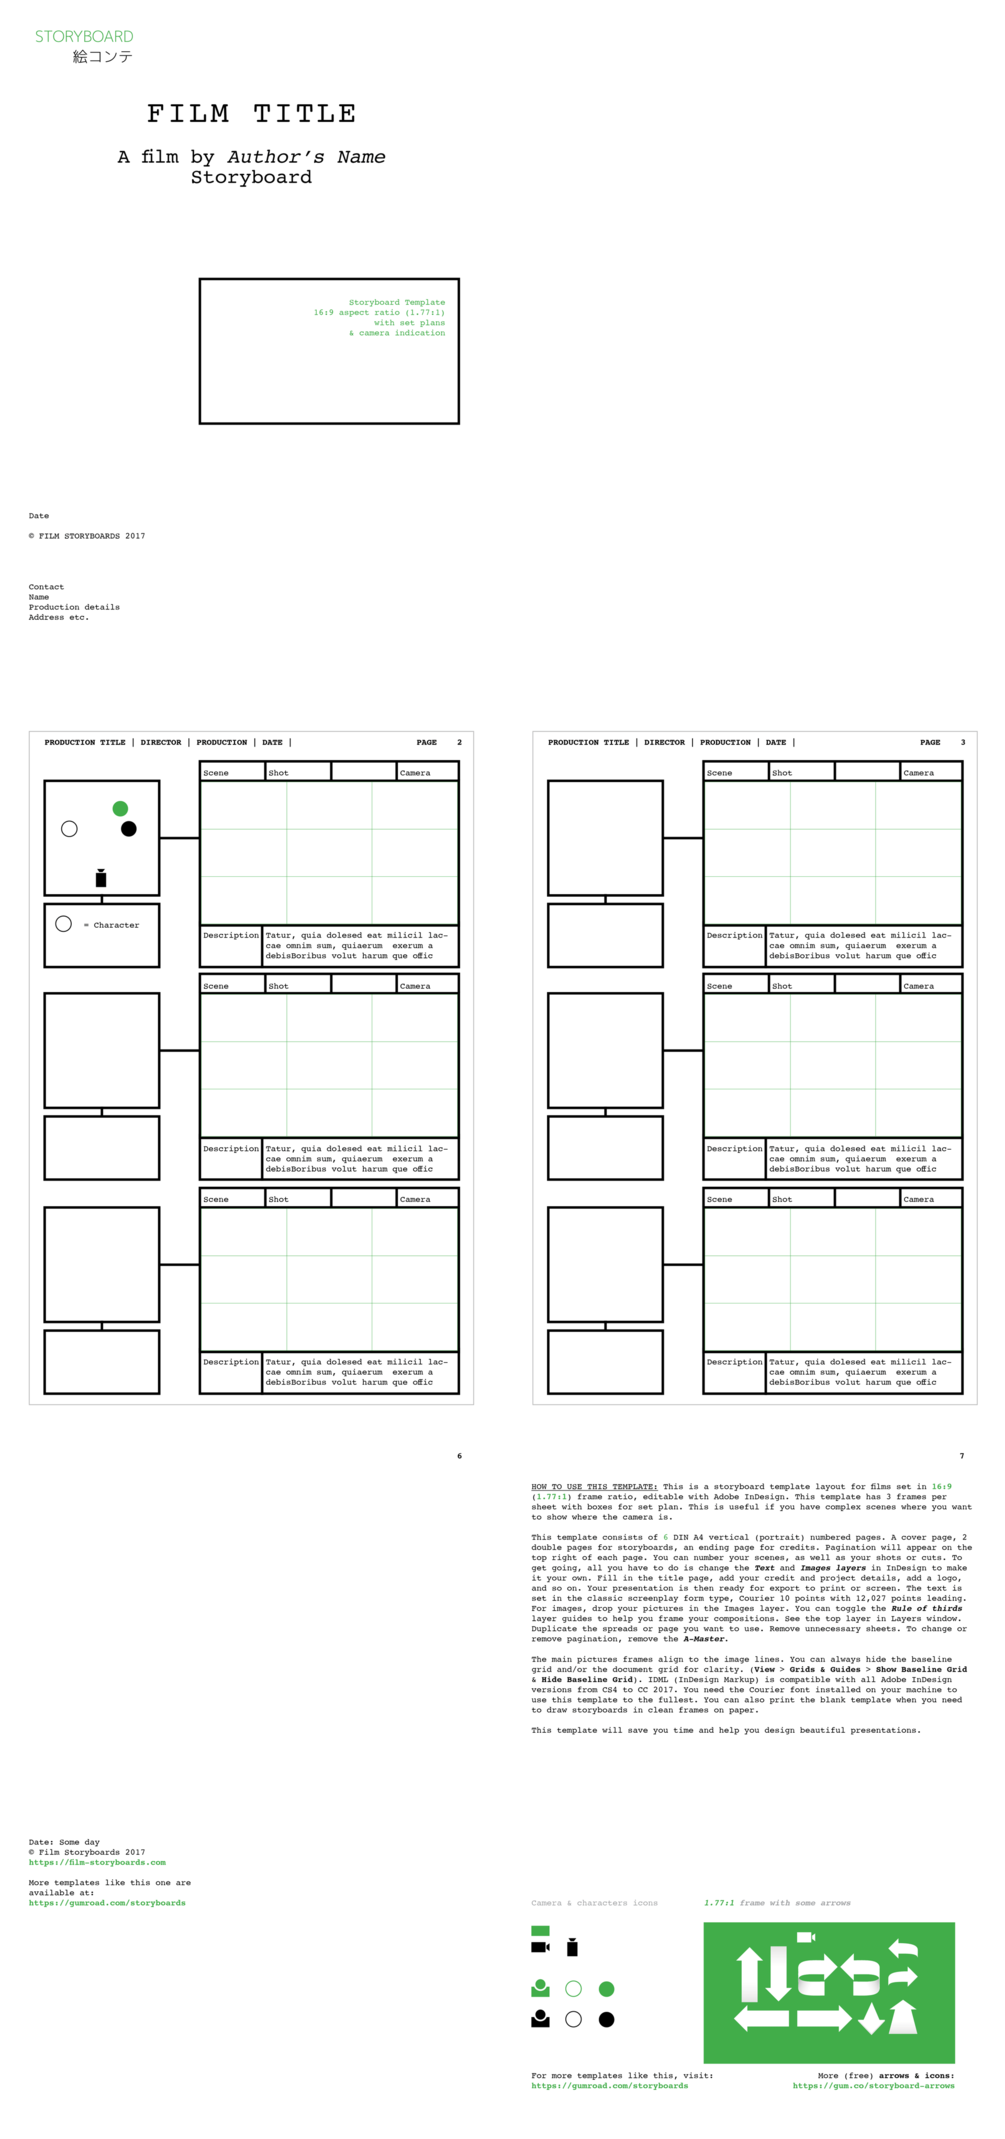 InDesign Storyboard Template 169 With Set Plan Courier 10pt On A4 Portrait This Is A Layout For Films In 1771 Frame Ratio